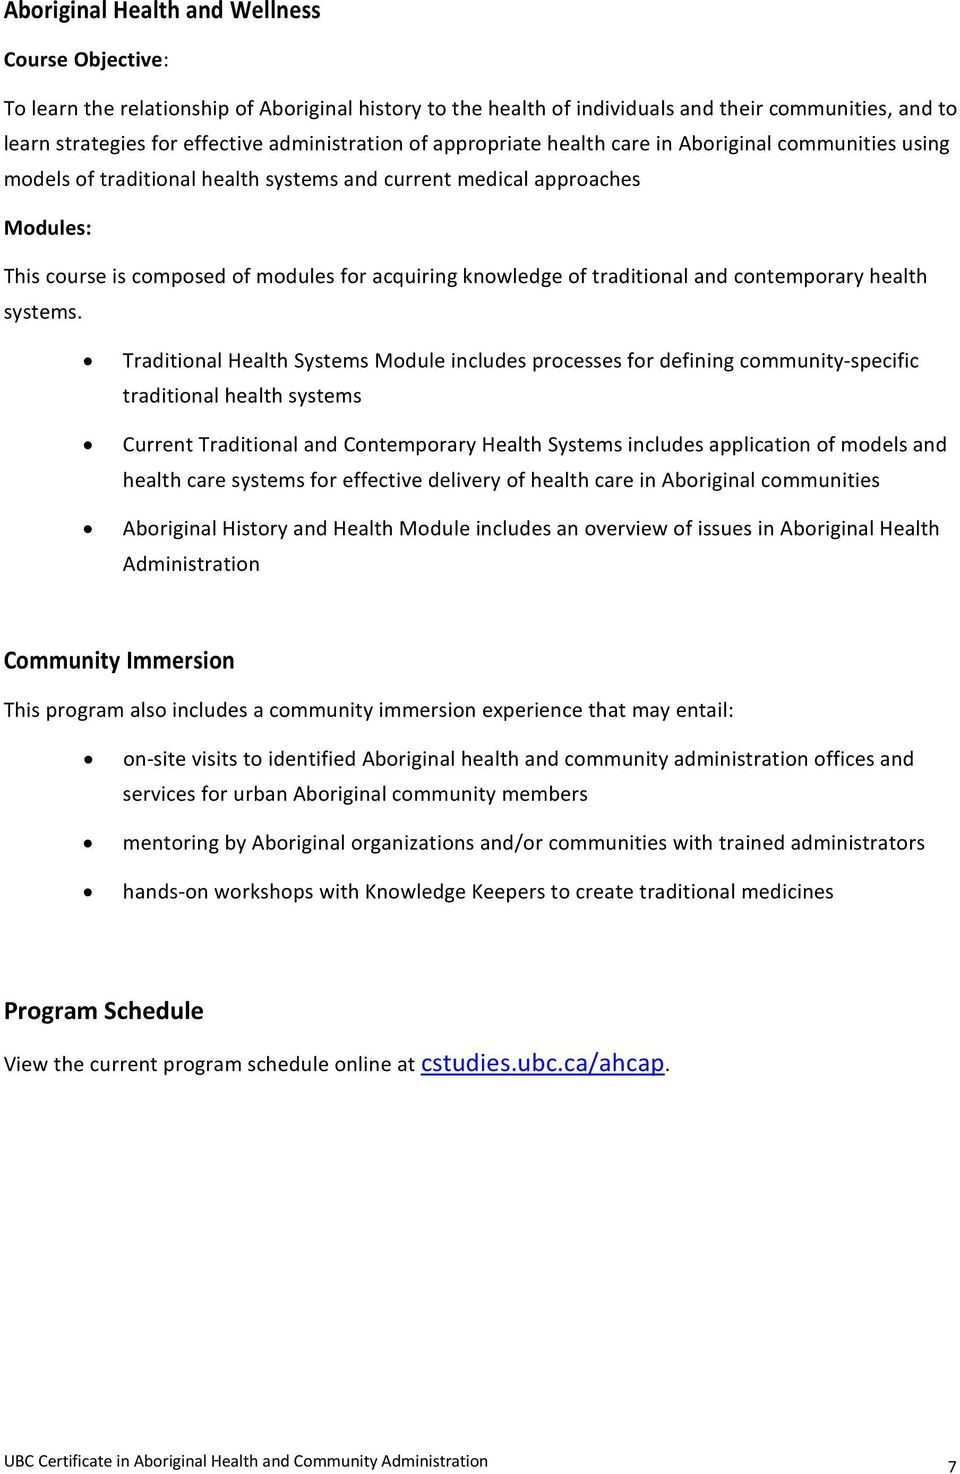 knowledge of traditional and contemporary health systems.